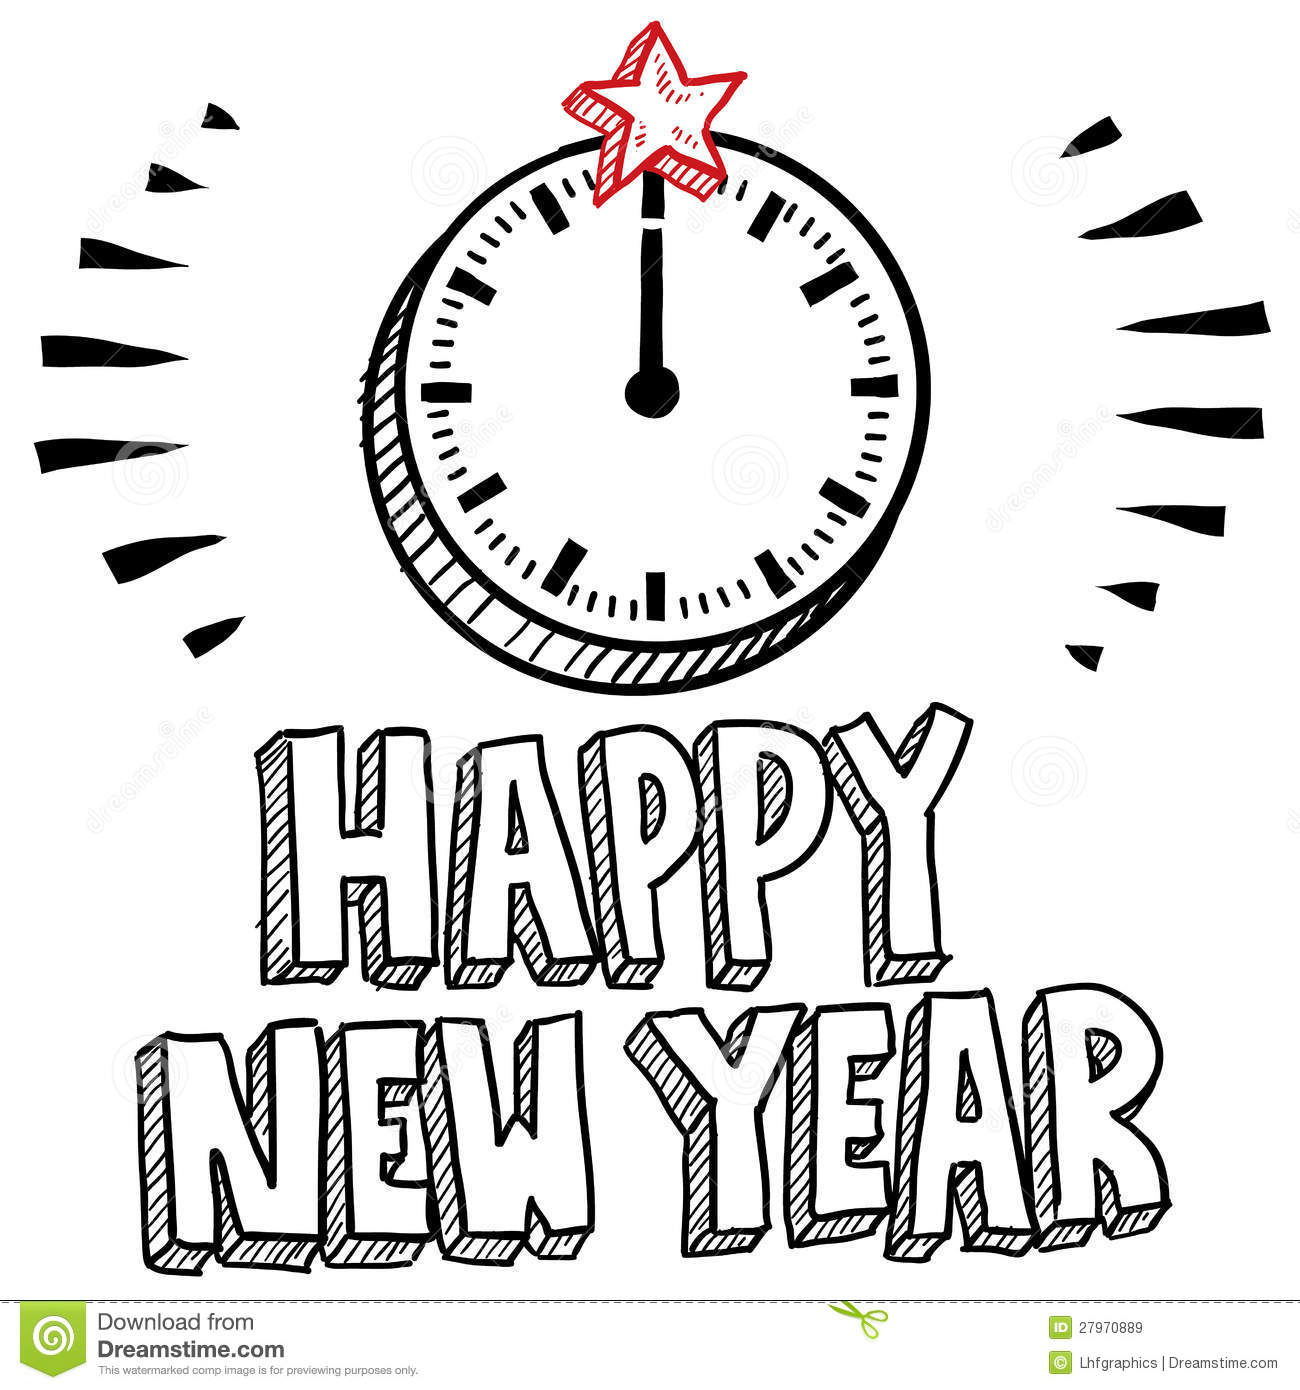 Midnight Clock New Yearu0026#39;s Eve Sketch Stock Vector - Illustration Of Holiday Doodle 27970889